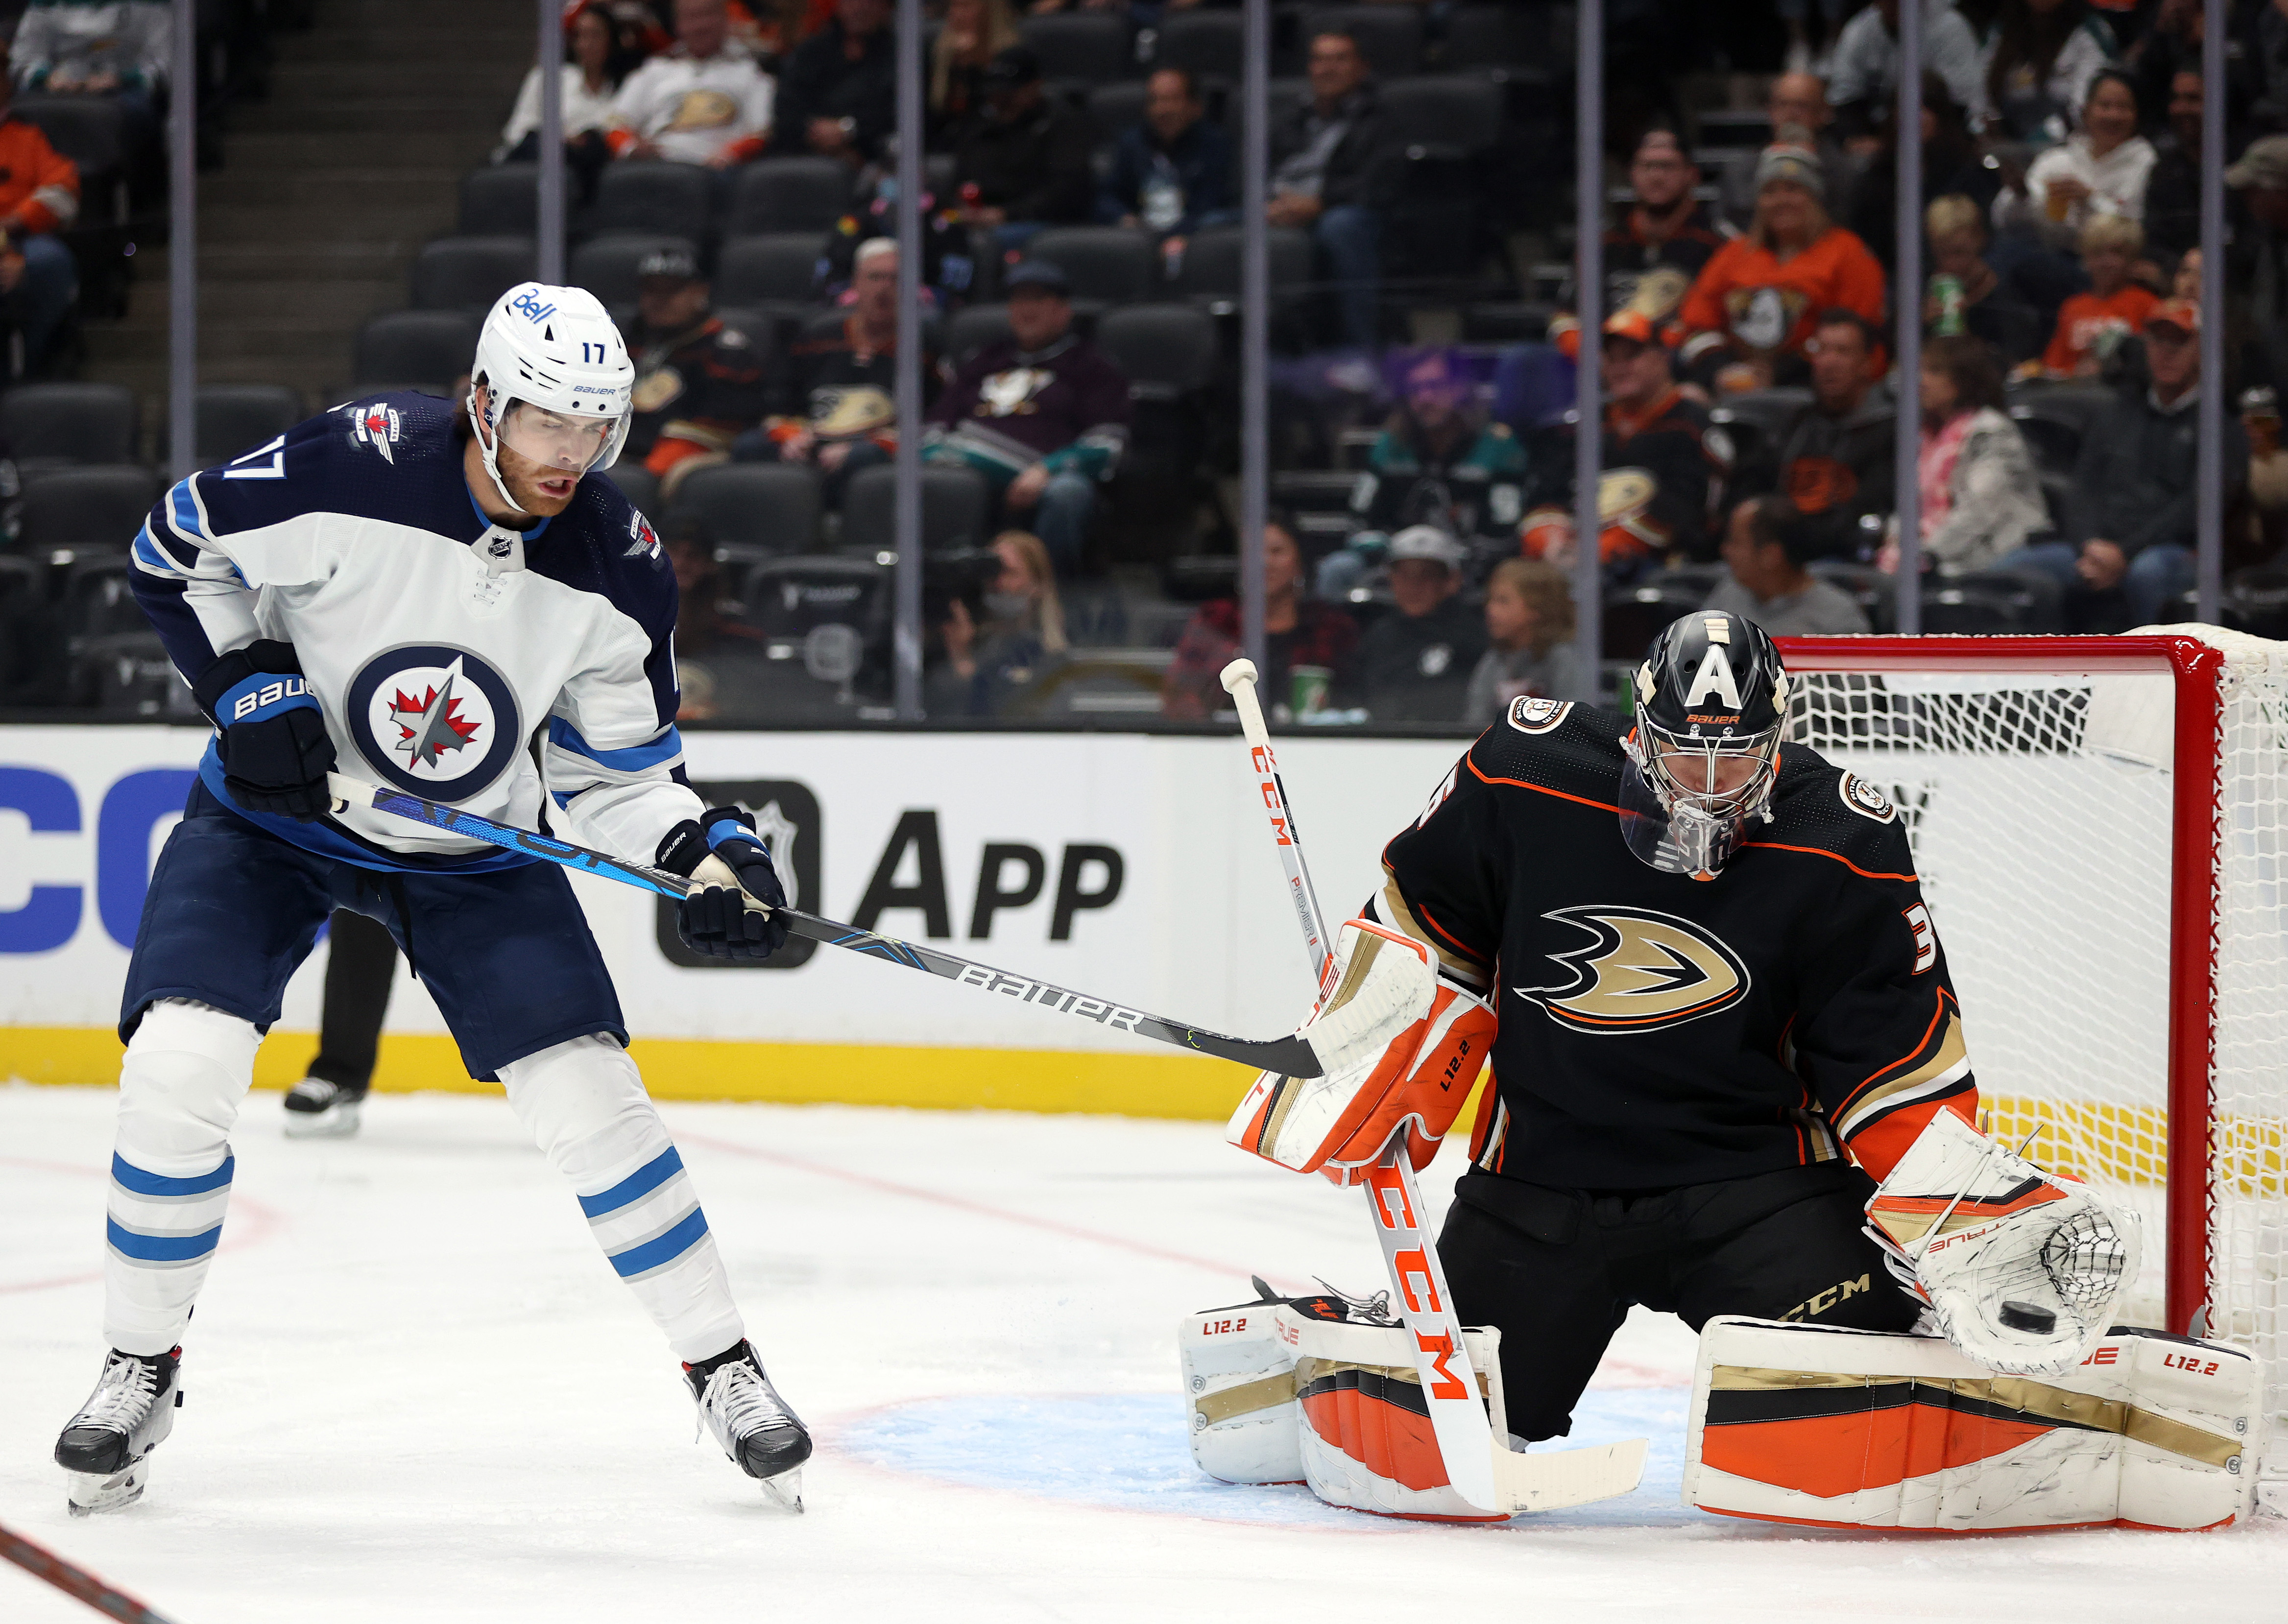 John Gibson #36 of the Anaheim Ducks makes a save in front of Adam Lowry #17 of the Winnipeg Jets in the first period at Honda Center on October 13, 2021 in Anaheim, California.